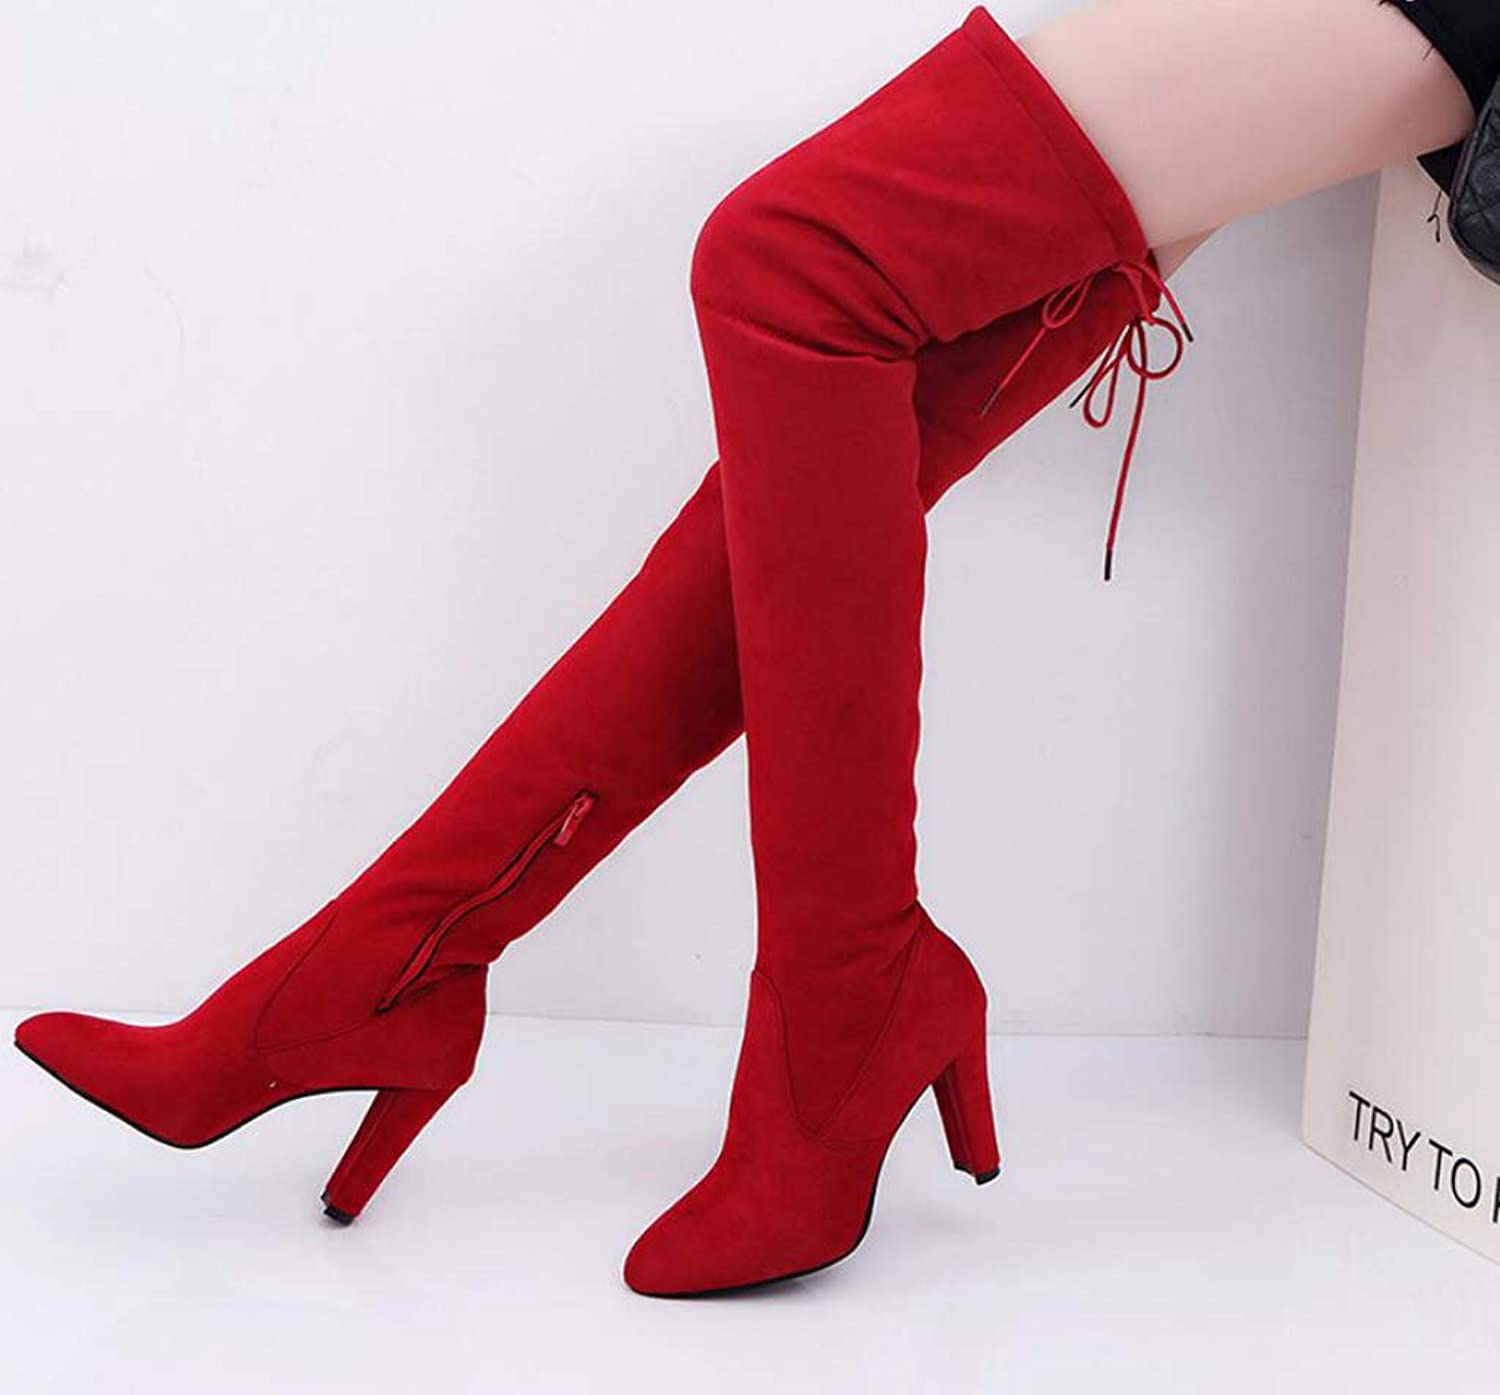 Long Boots, Autumn and Winter Pointed High Heel Women's Boots, Stylish Zipper, Thin Legs, Over The Knee Boots, Elastic Boots,Red,43